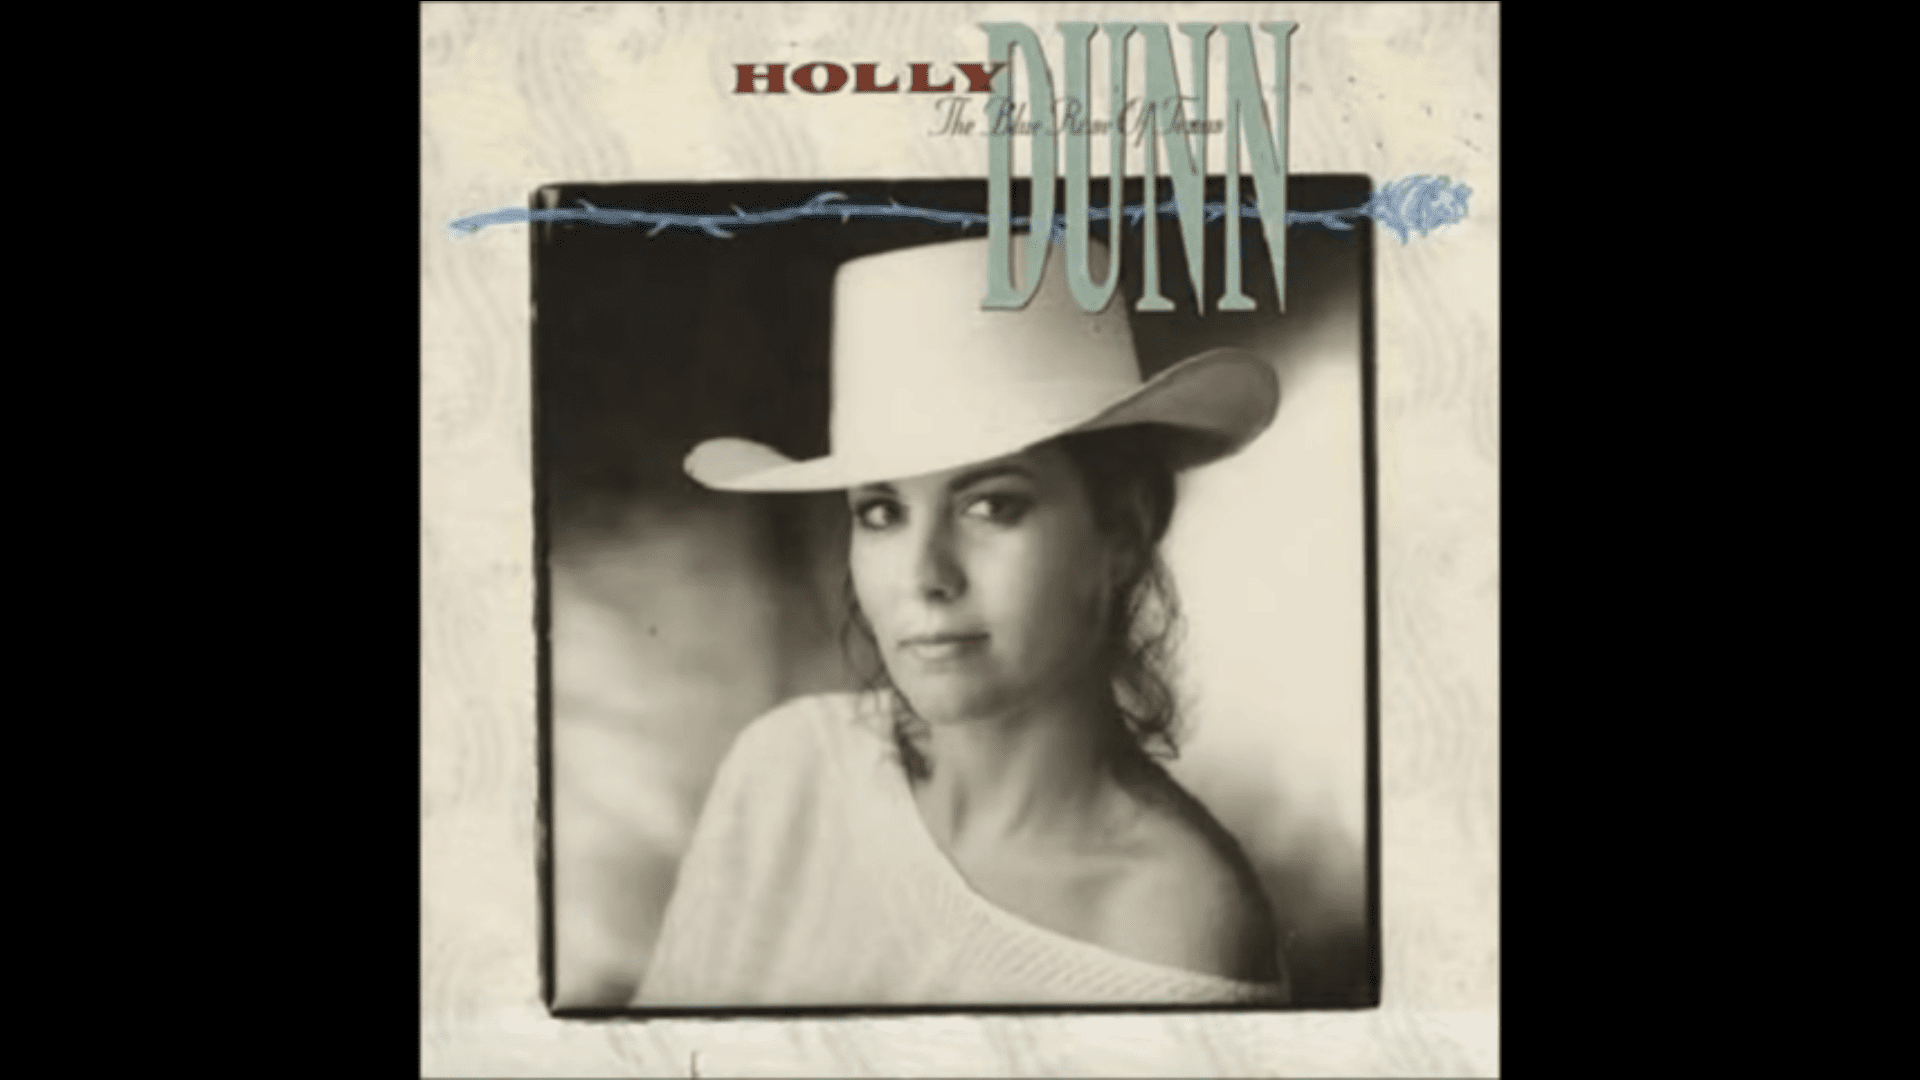 Holly Dunn, 62nd Birthday